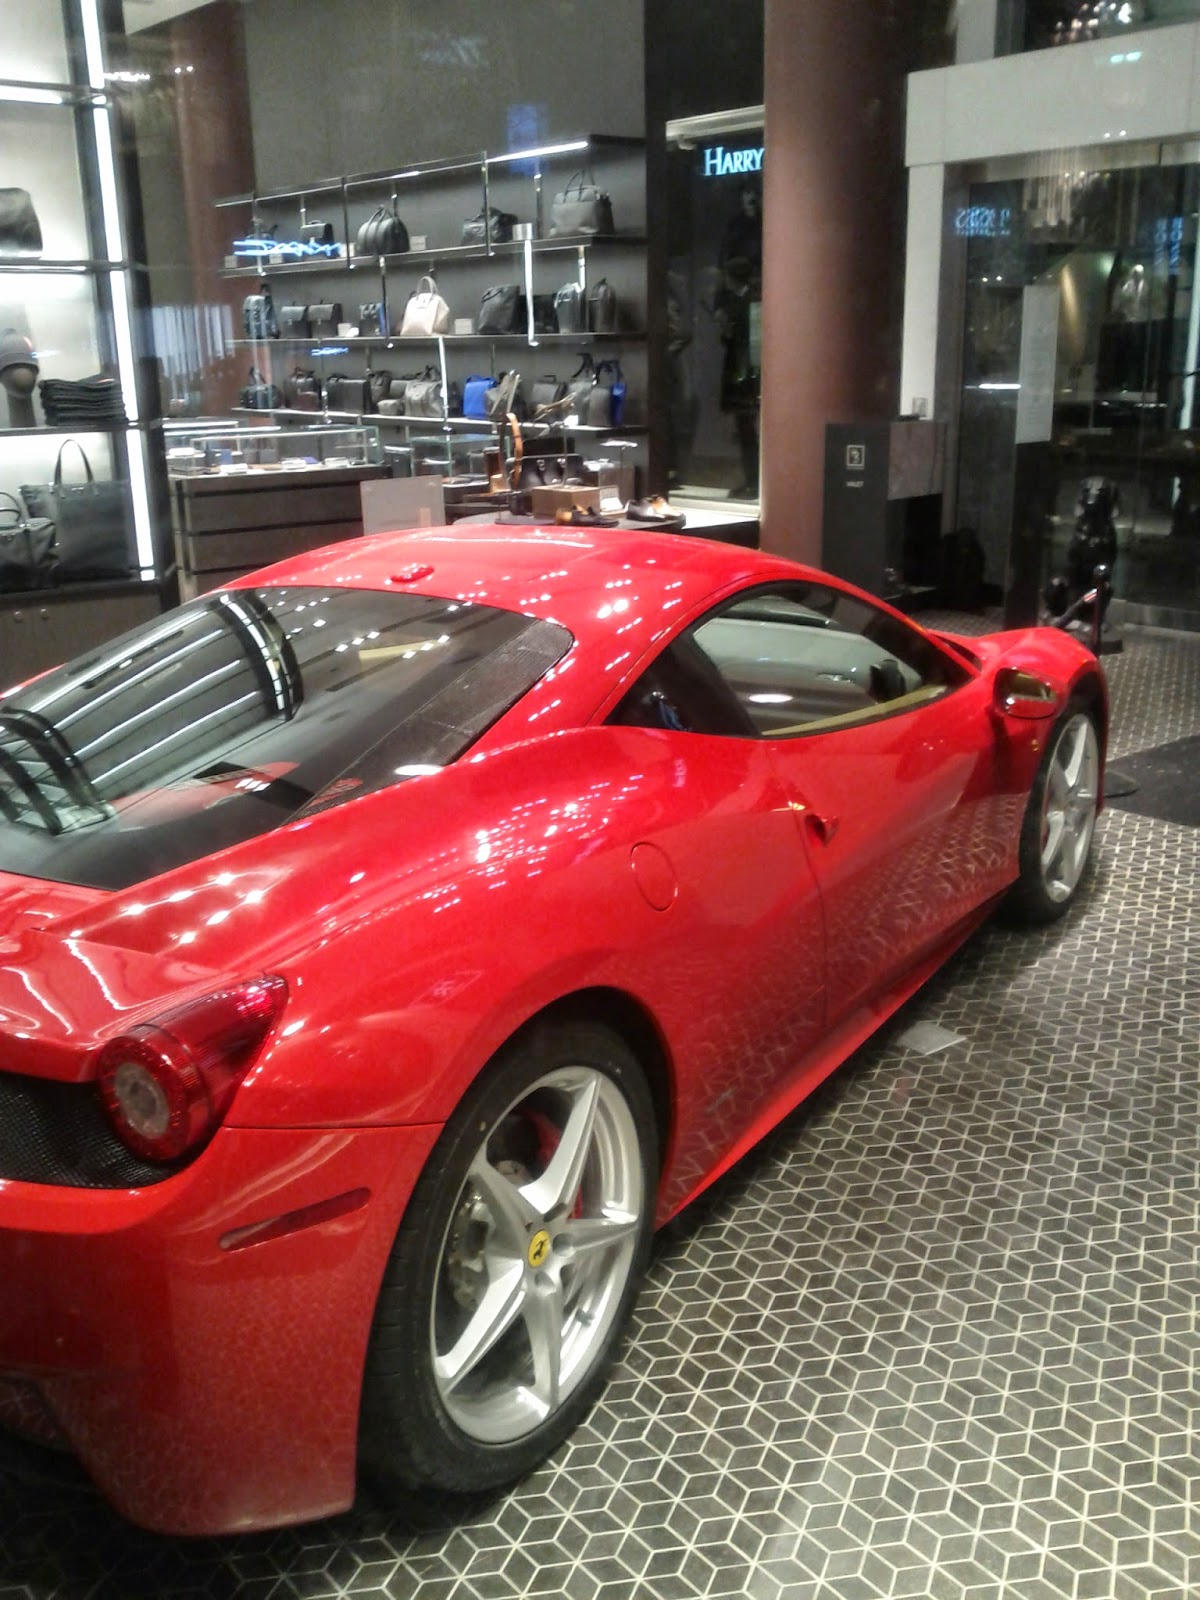 Holt Renfrew Red Ferrari